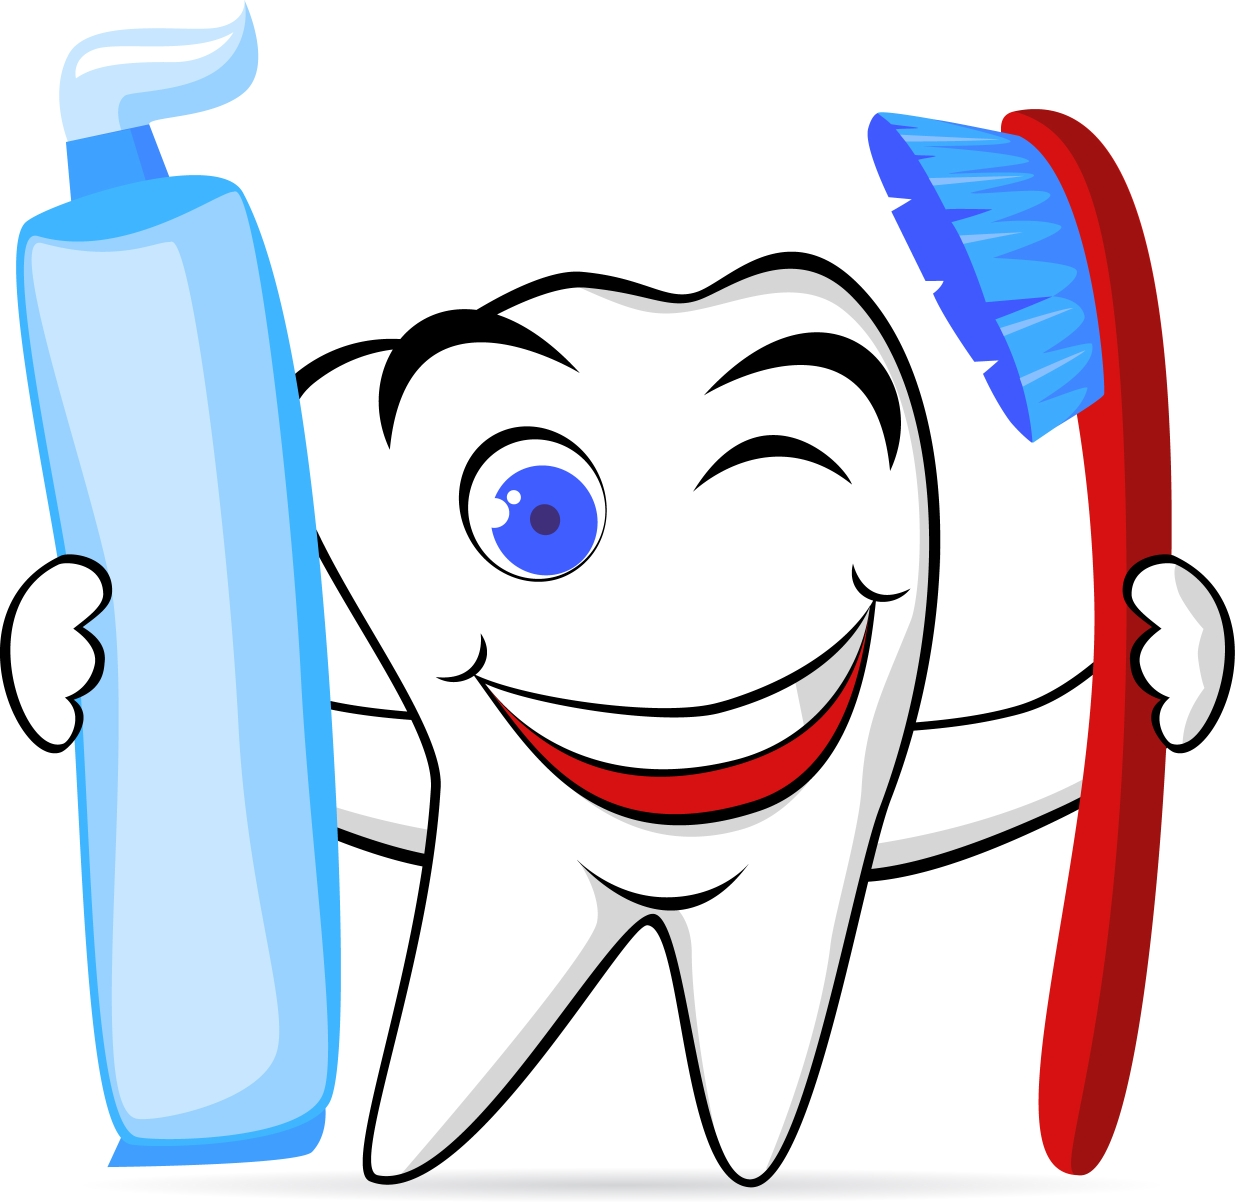 hight resolution of 1235x1202 toothbrush for preschool clipart